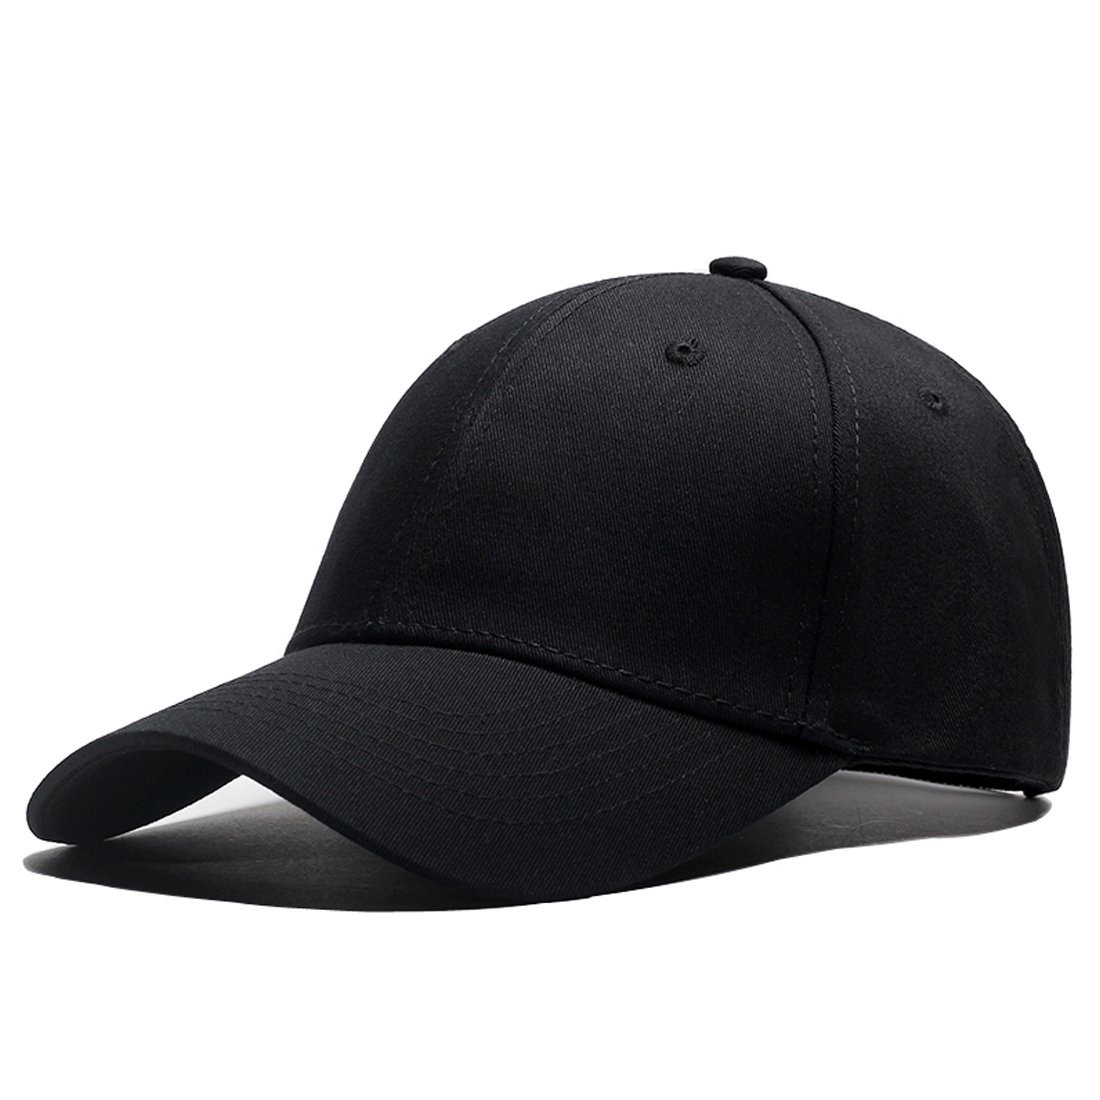 2ecf11eaba7 Amazon.com  LAOWWO Baseball Cap Classic Adjustable Plain Hat Men Women Golf  Cotton Dad Hat  Sports   Outdoors